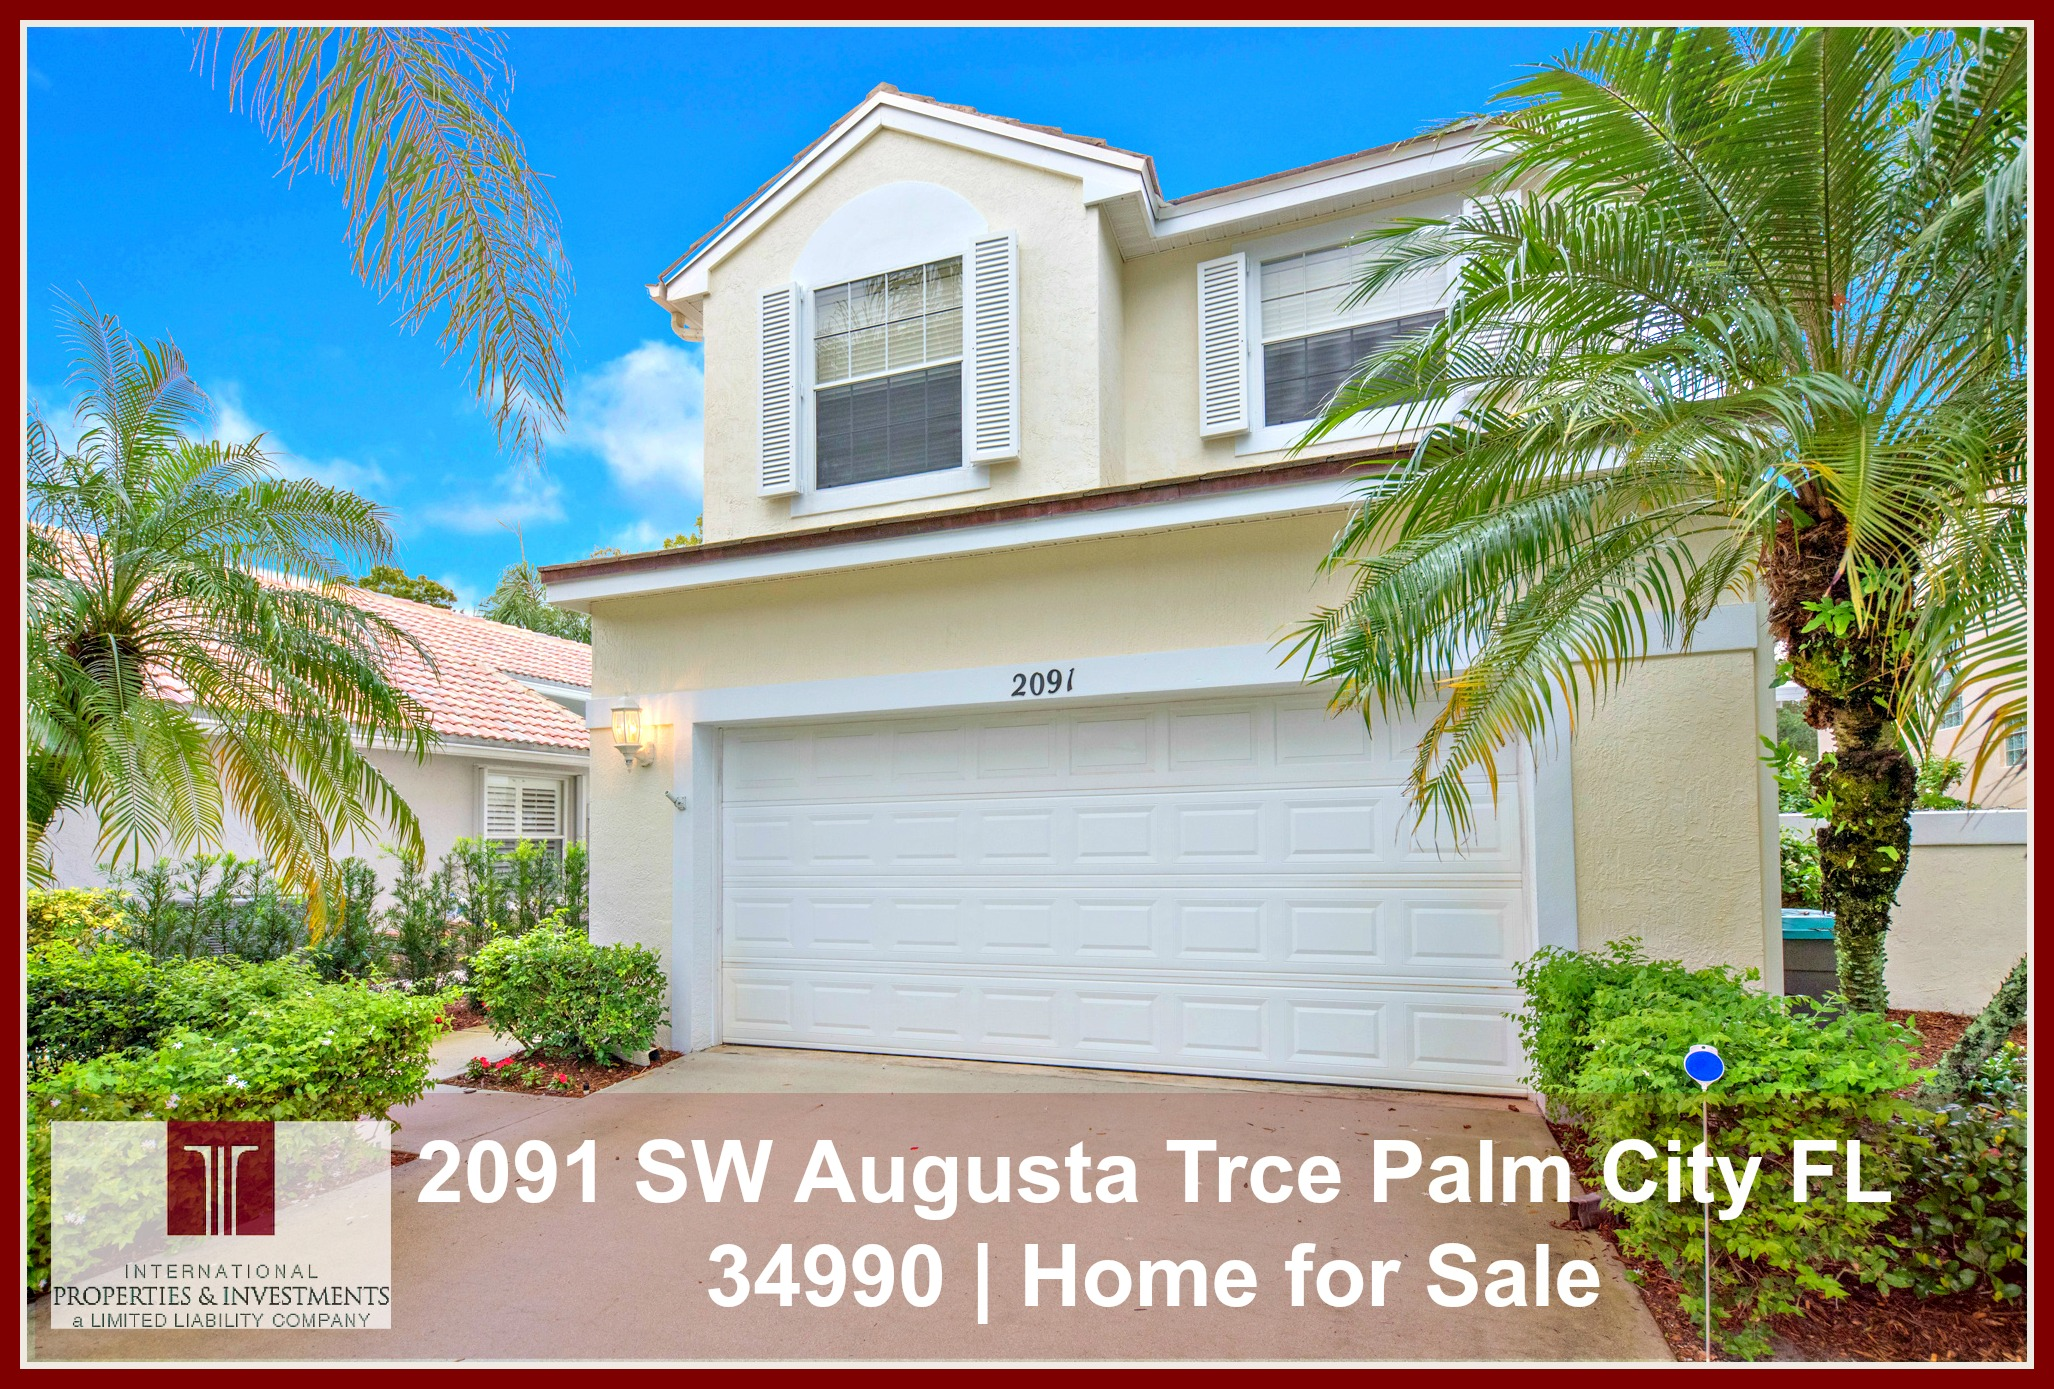 2091 SW Augusta Trce Palm City FL 34990 Home For Sale